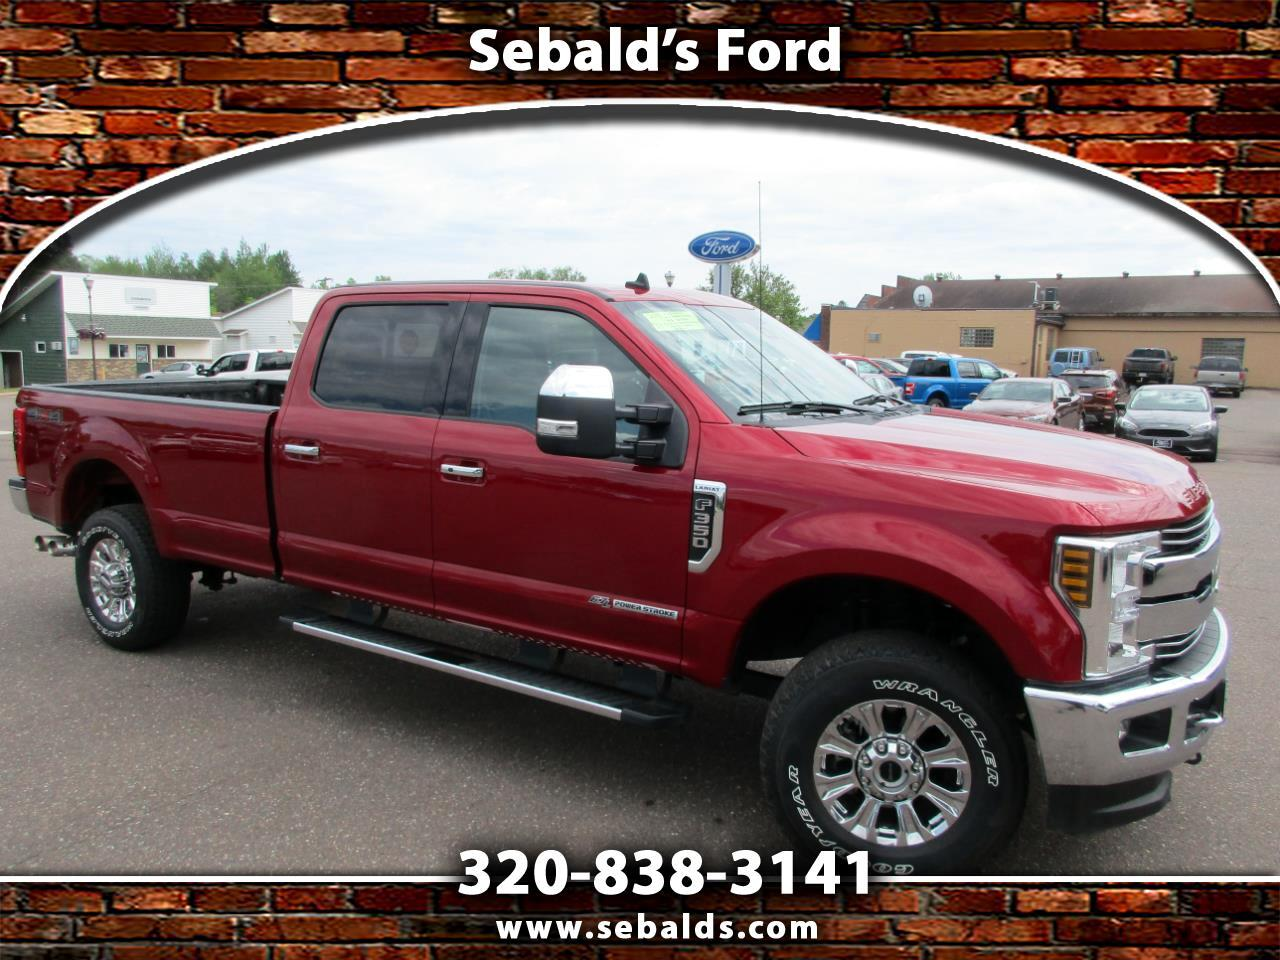 2019 Ford Super Duty F-350 SRW Lariat 4WD Crew Cab 8' Box